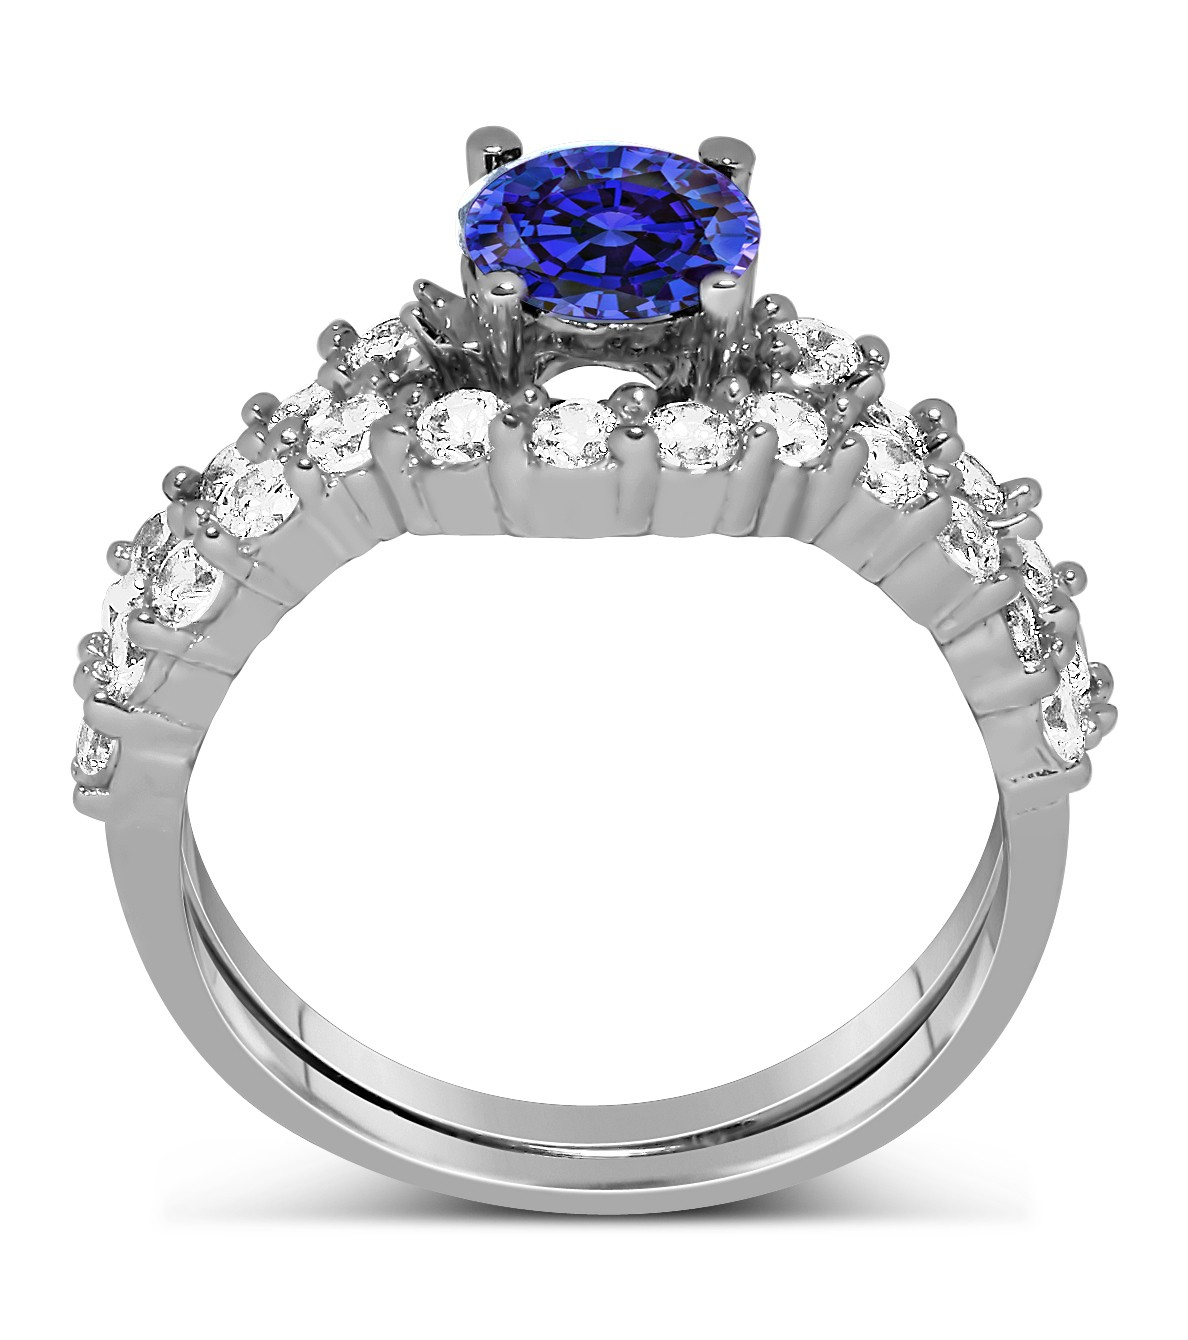 2 Carat Vintage Round cut Blue Sapphire and Diamond Wedding Ring Set in White